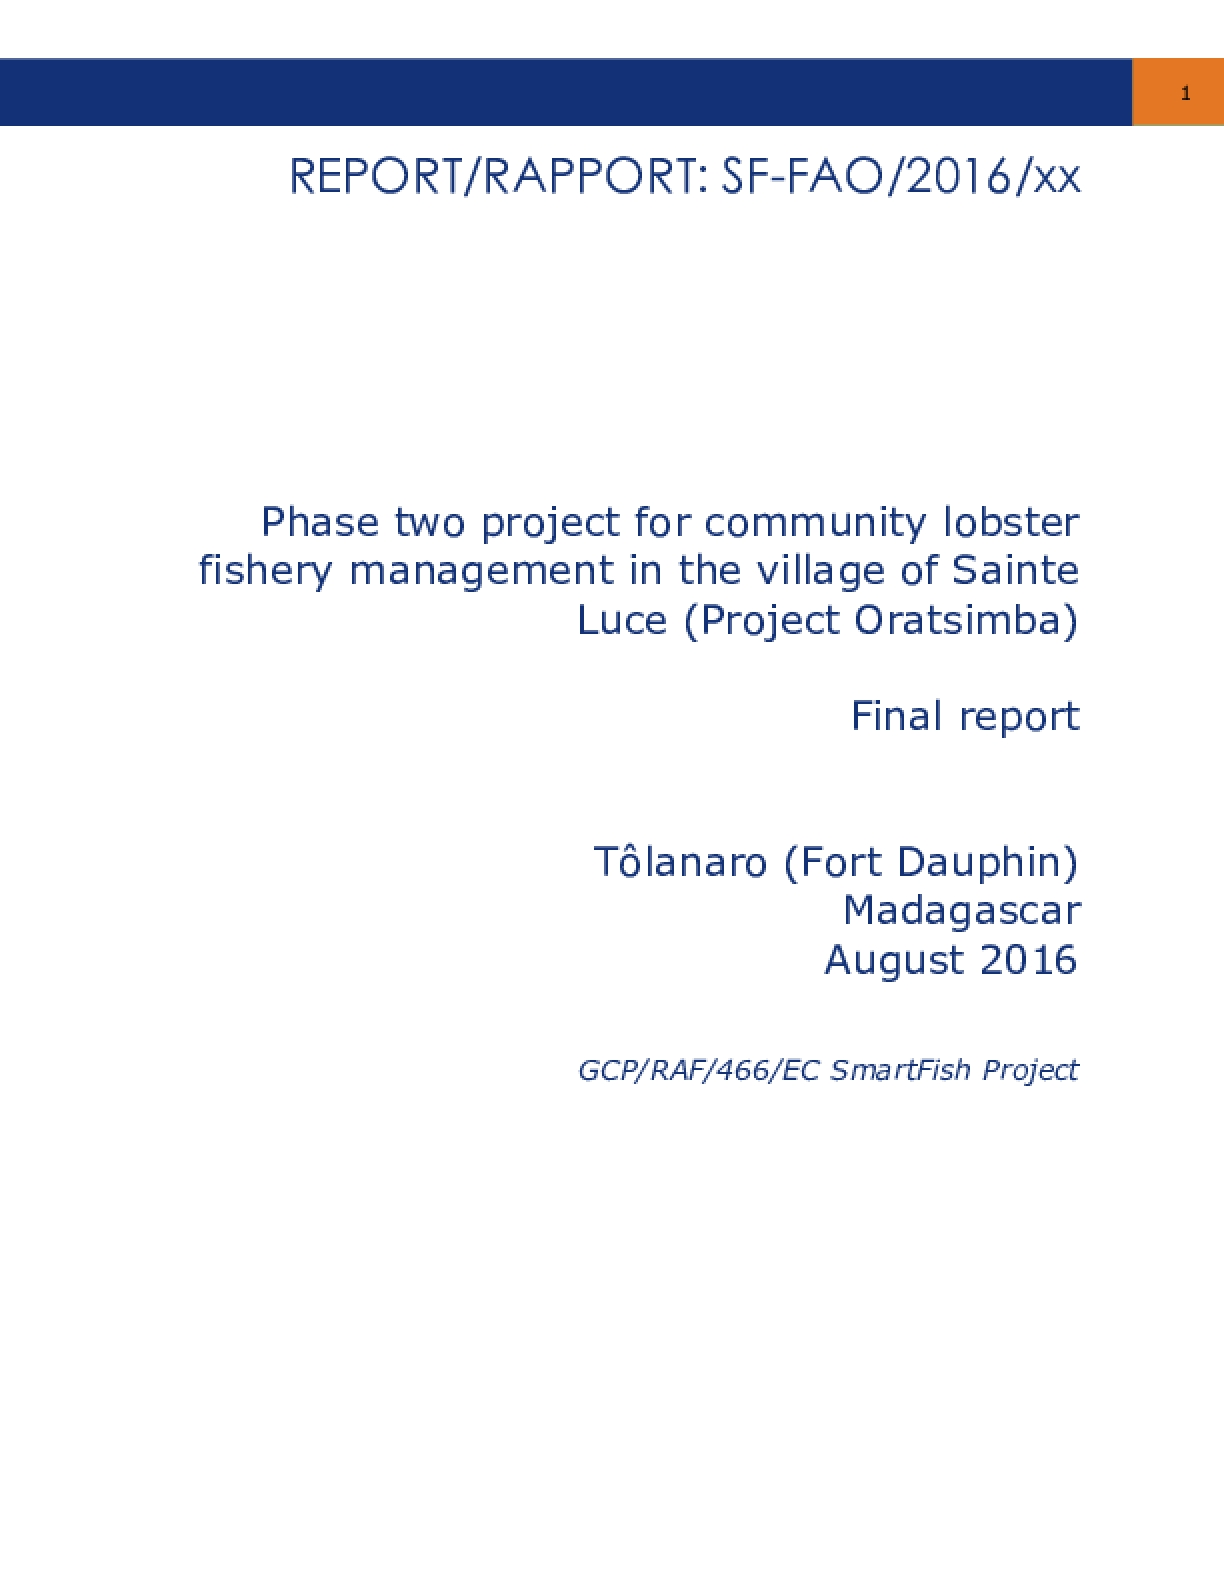 Final report: Phase two project for community lobster fishery management in the village of Sainte Luce (Project Oratsimba)